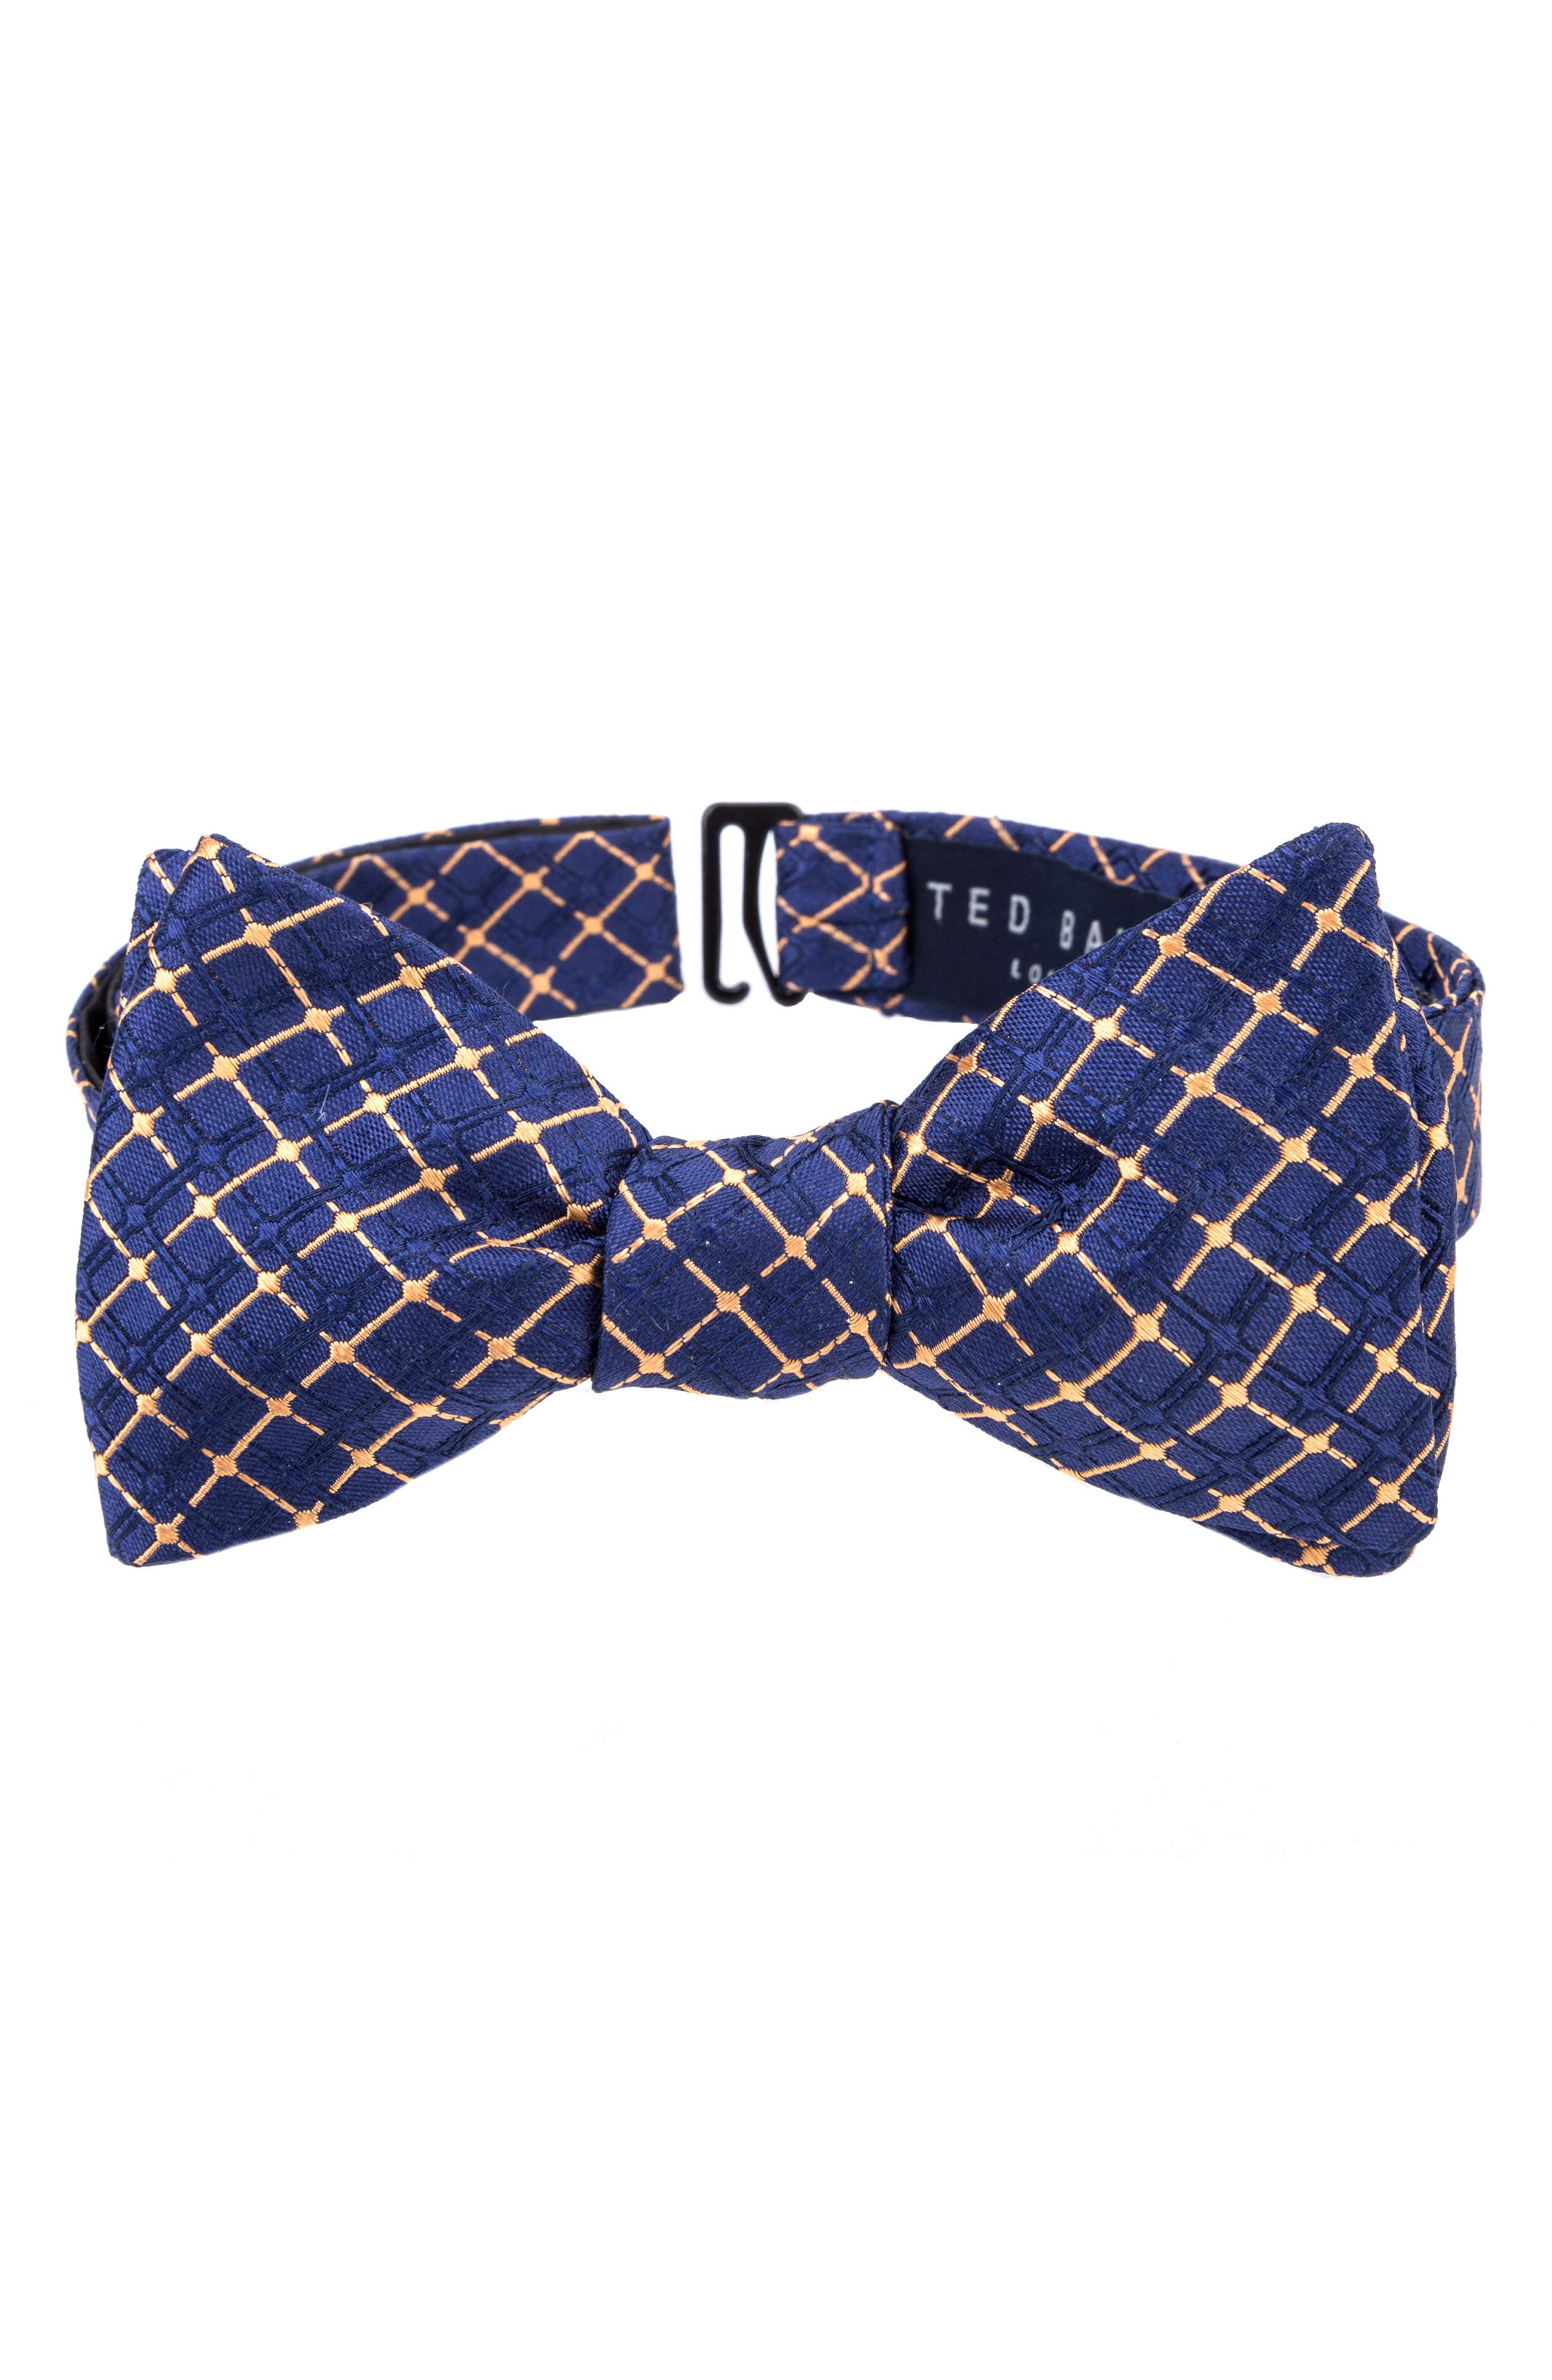 Alternate Image 1 Selected - Ted Baker London Superb Check Silk Bow Tie